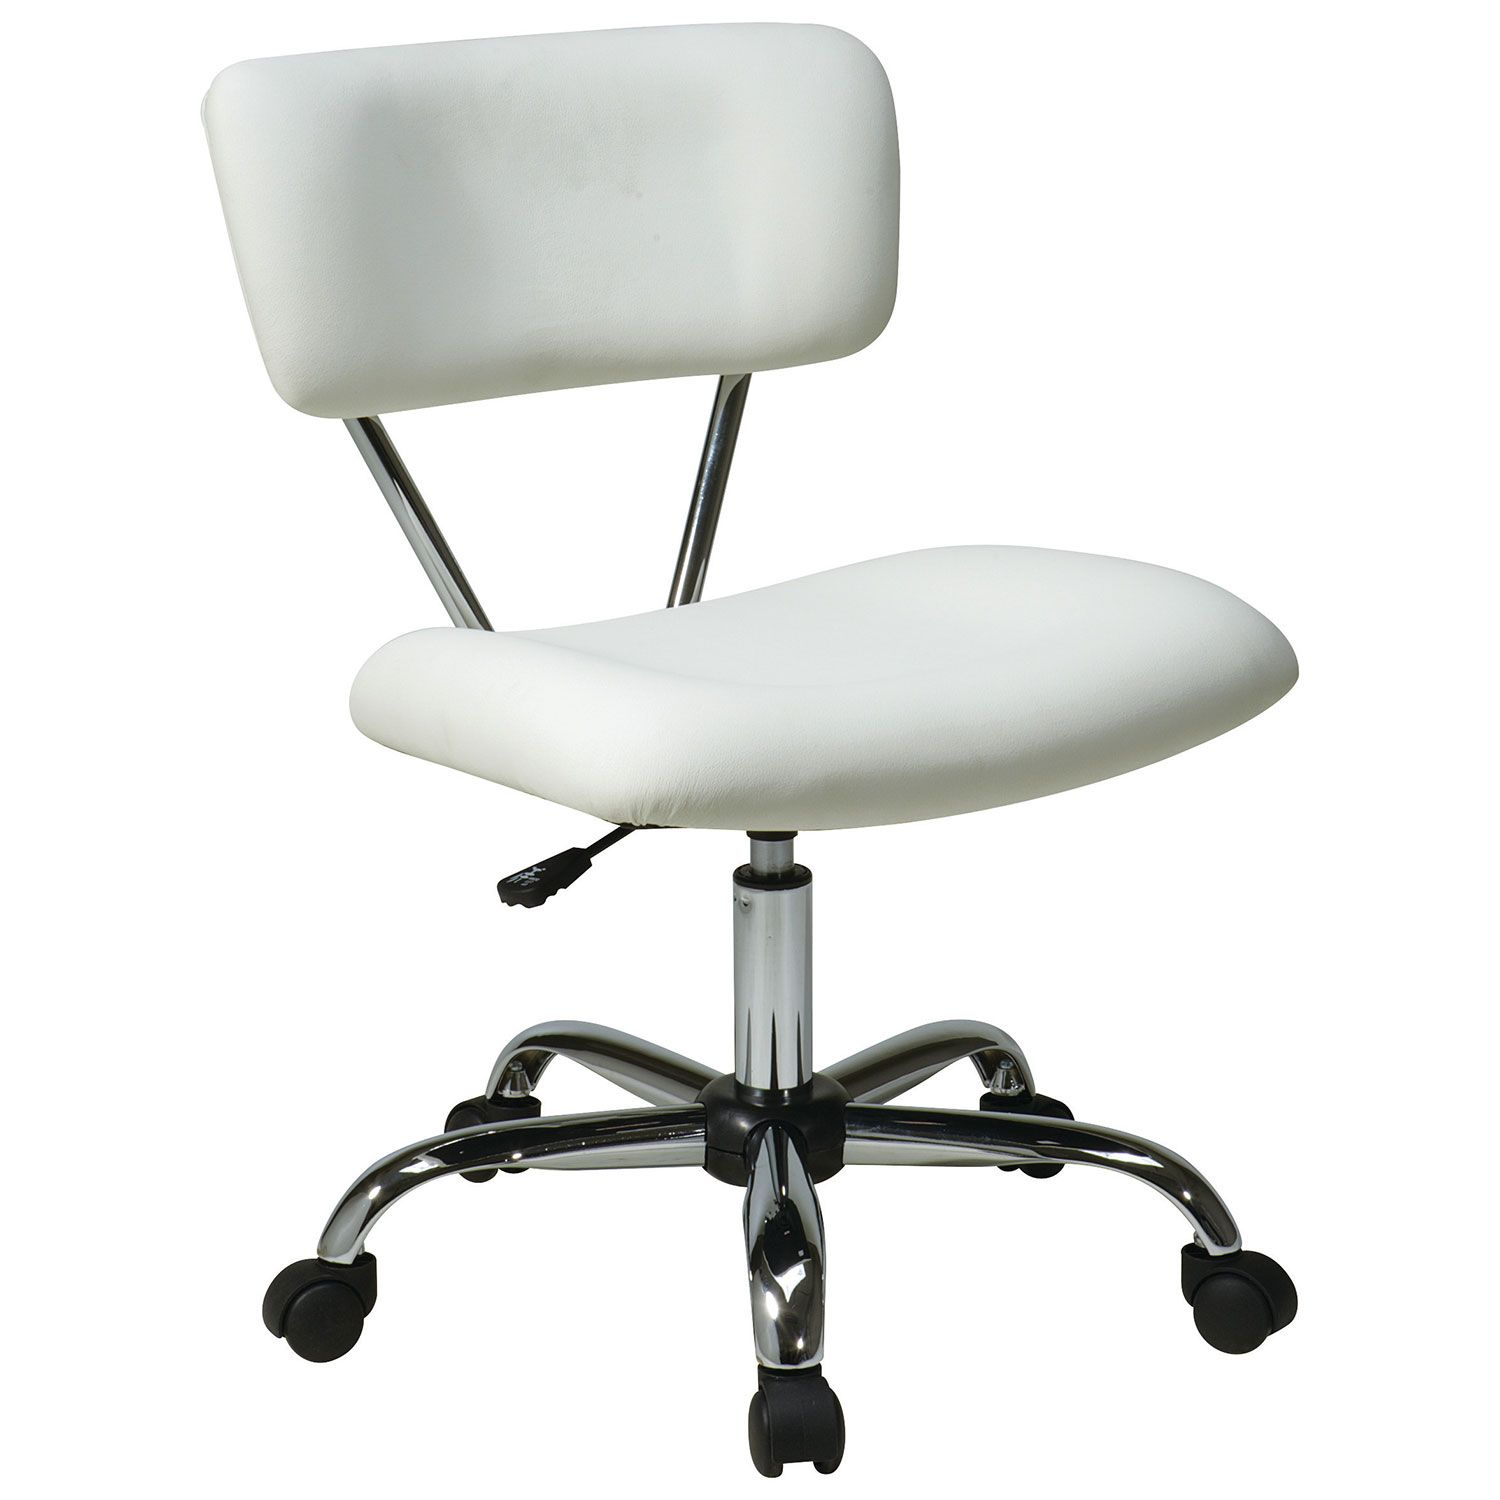 Incredible Avenue Six Vista Vinyl Office Chair White Online Only Gmtry Best Dining Table And Chair Ideas Images Gmtryco